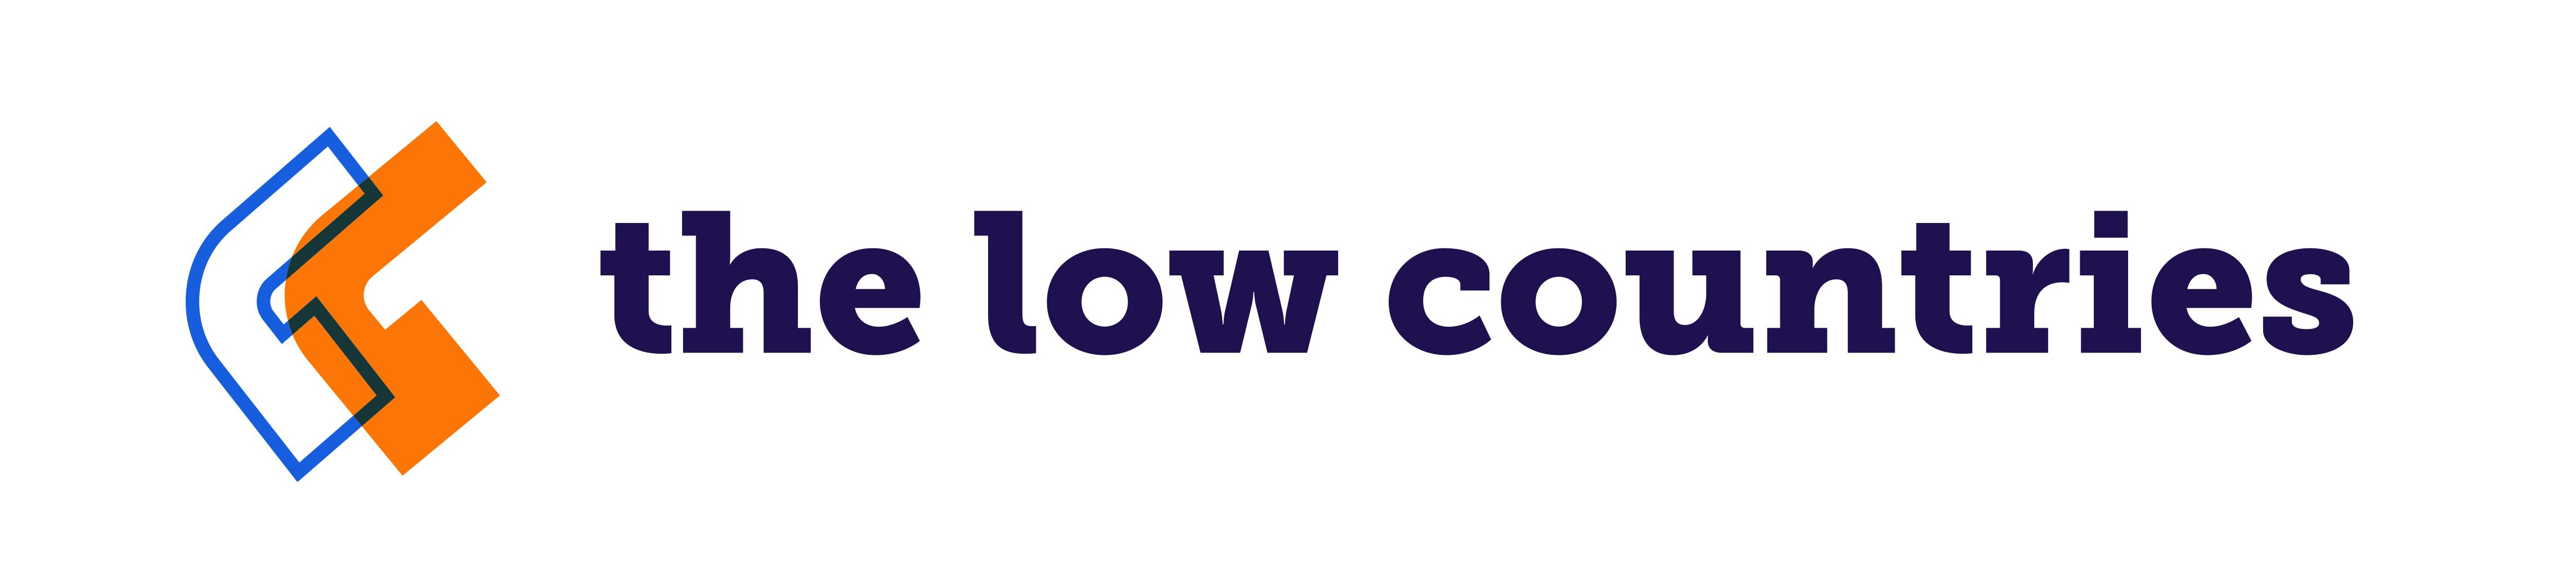 Logo the low countries